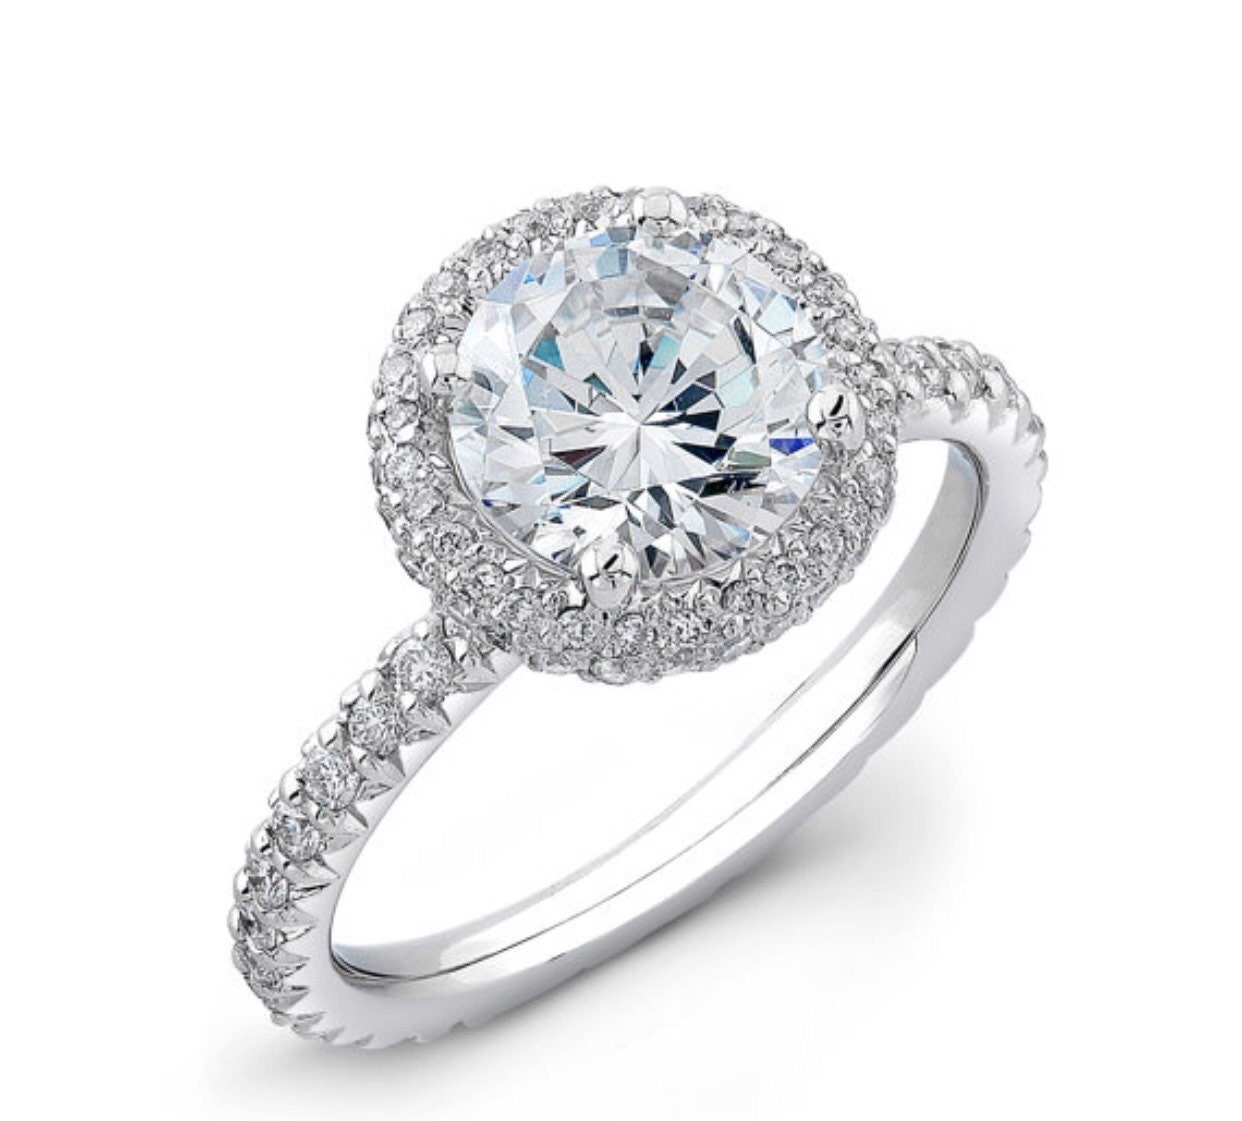 fe136c7d0a695 Ladies Platinum french pave diamond halo engagement ring 0.33 ctw with  1.50ct natural Round white sapphire